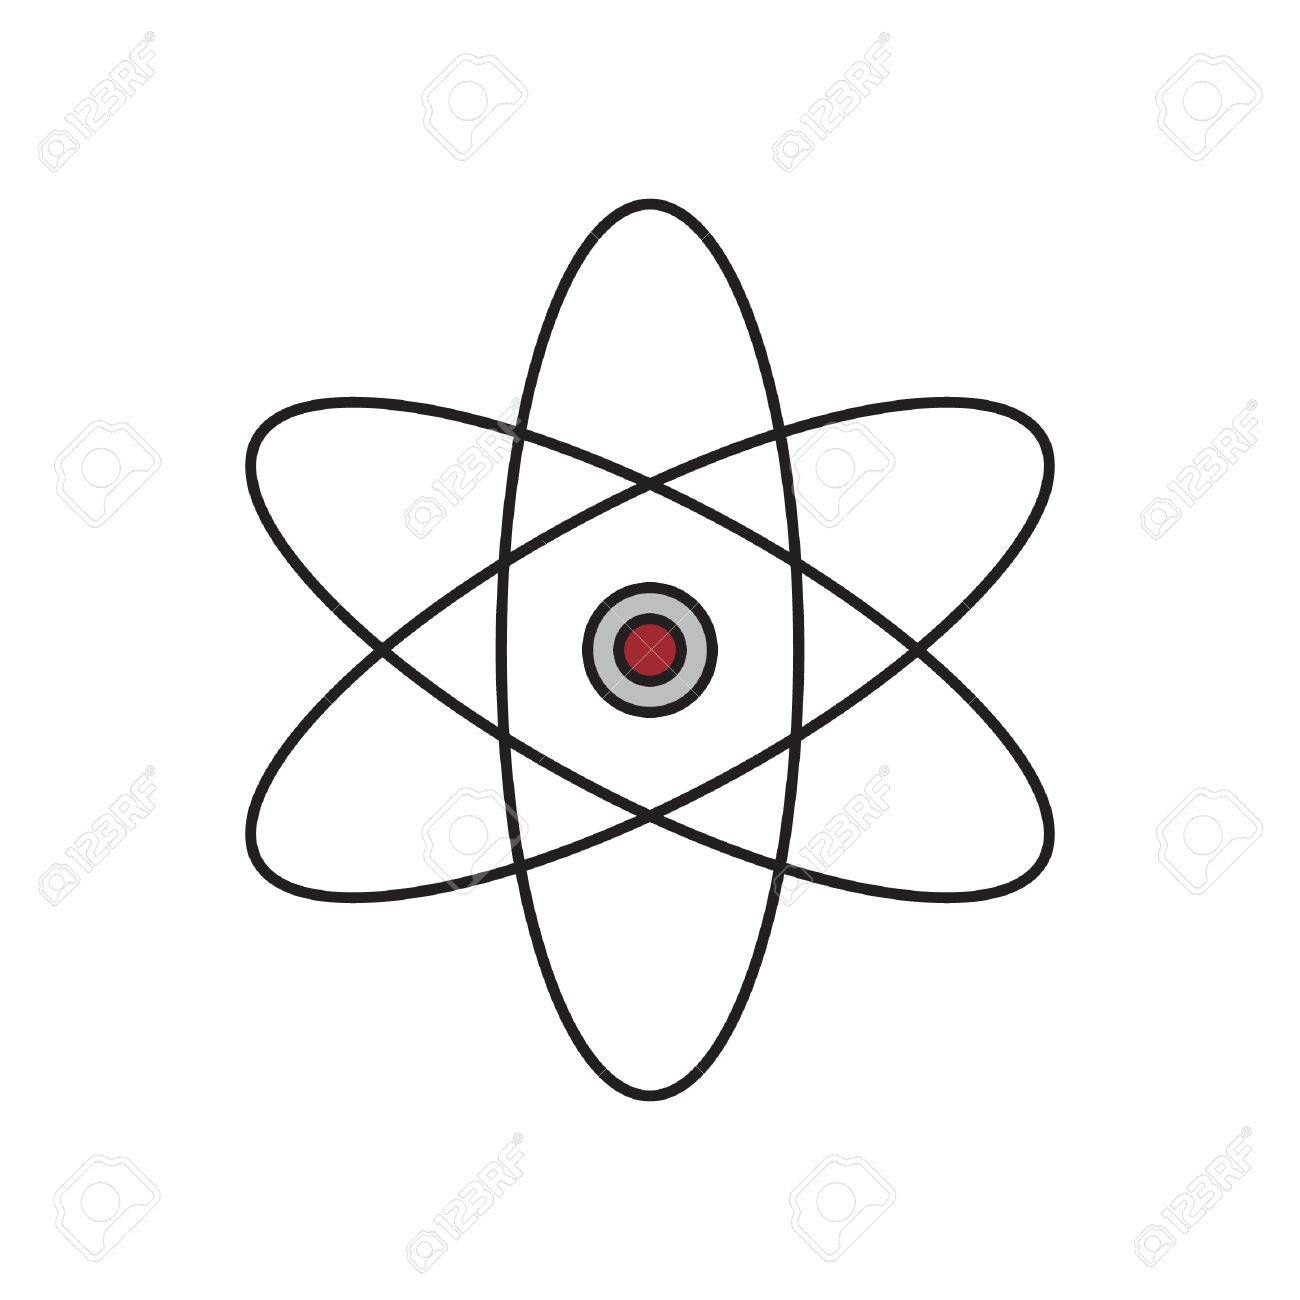 Atomic Structure Stock Vector